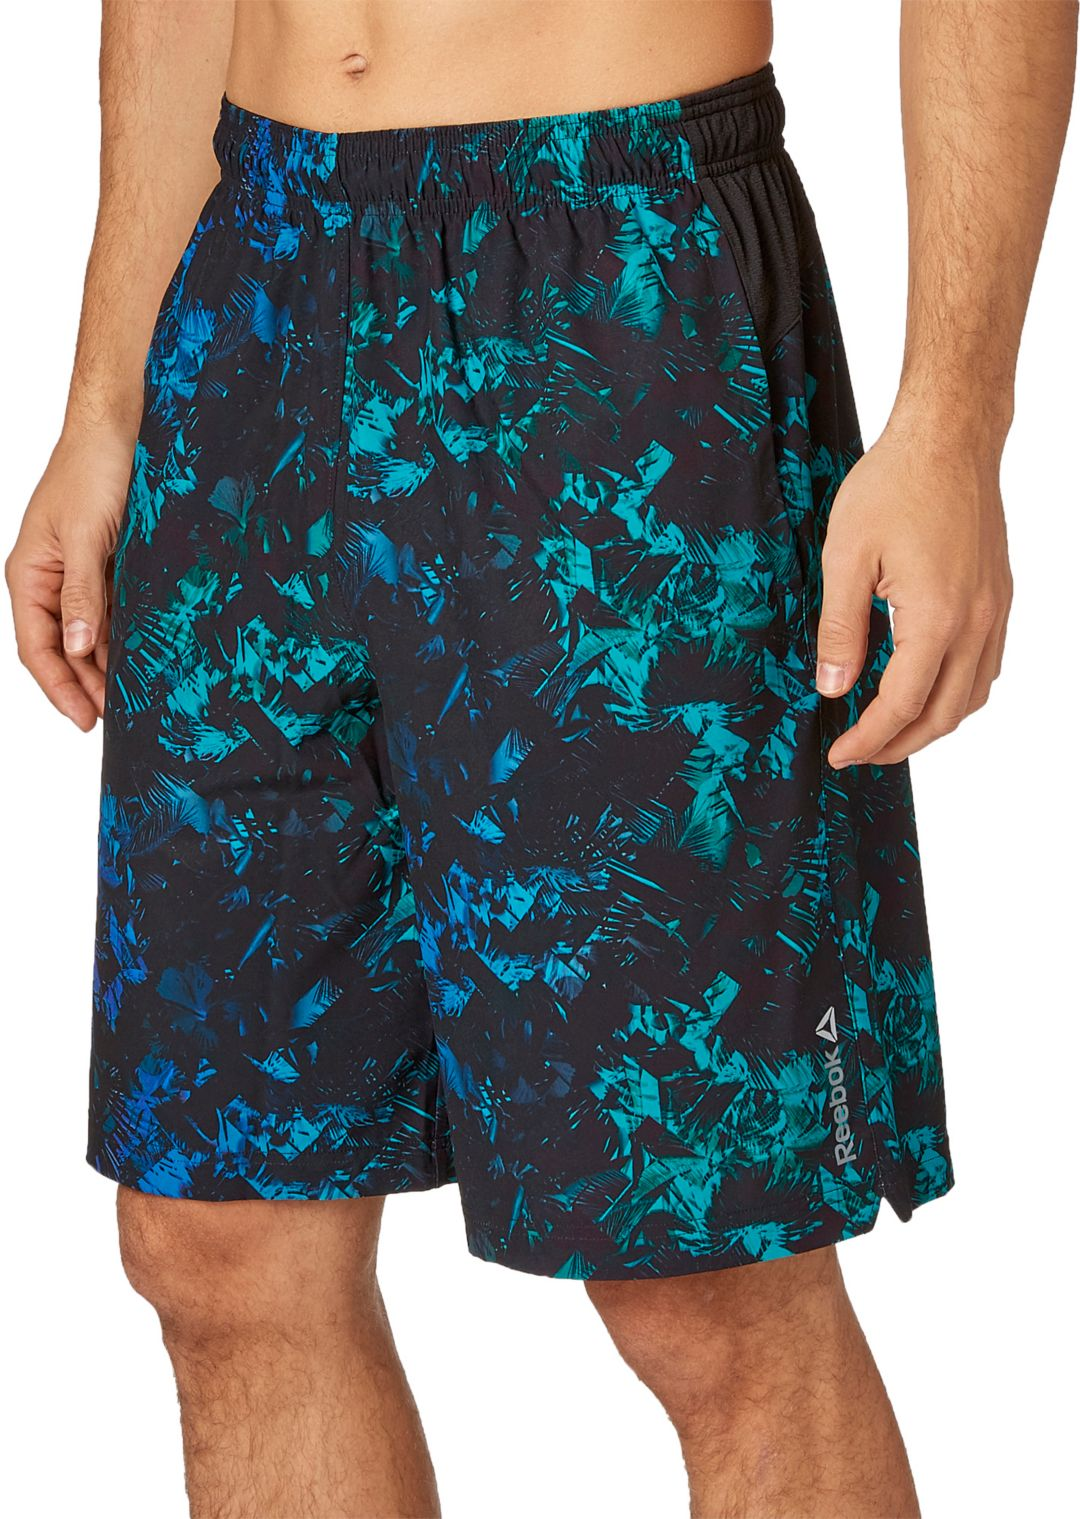 c1691336b8f Reebok Men's Printed Woven Shorts. noImageFound. Previous